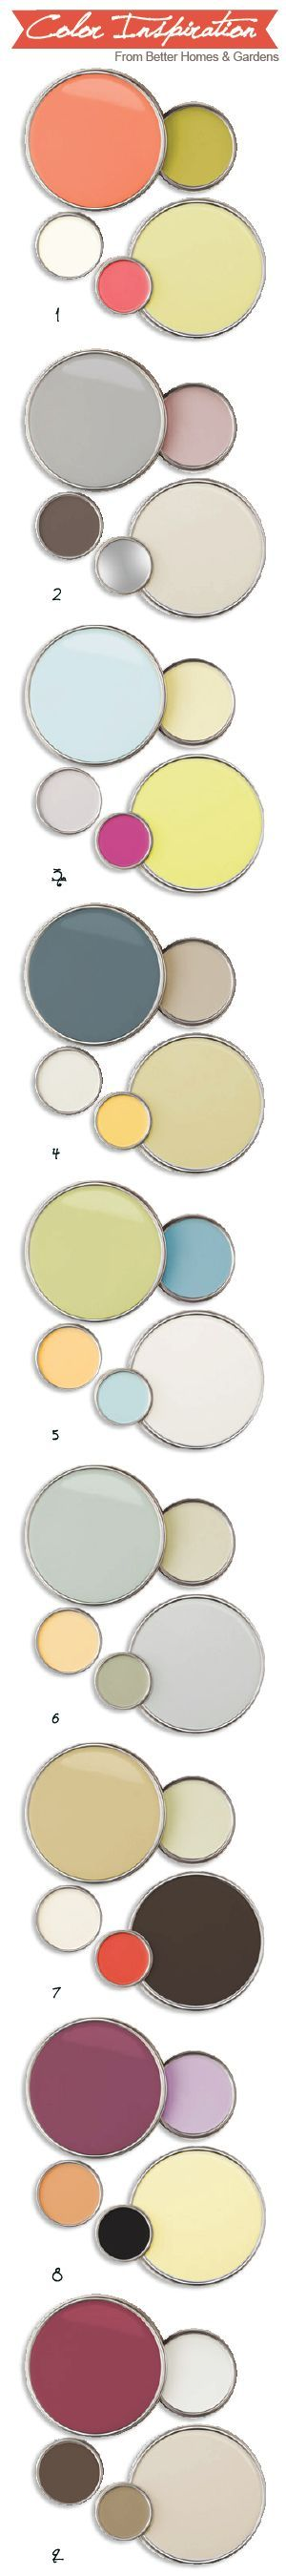 Better homes and gardens color palette inspirations great ideas for some unique nursery palettes